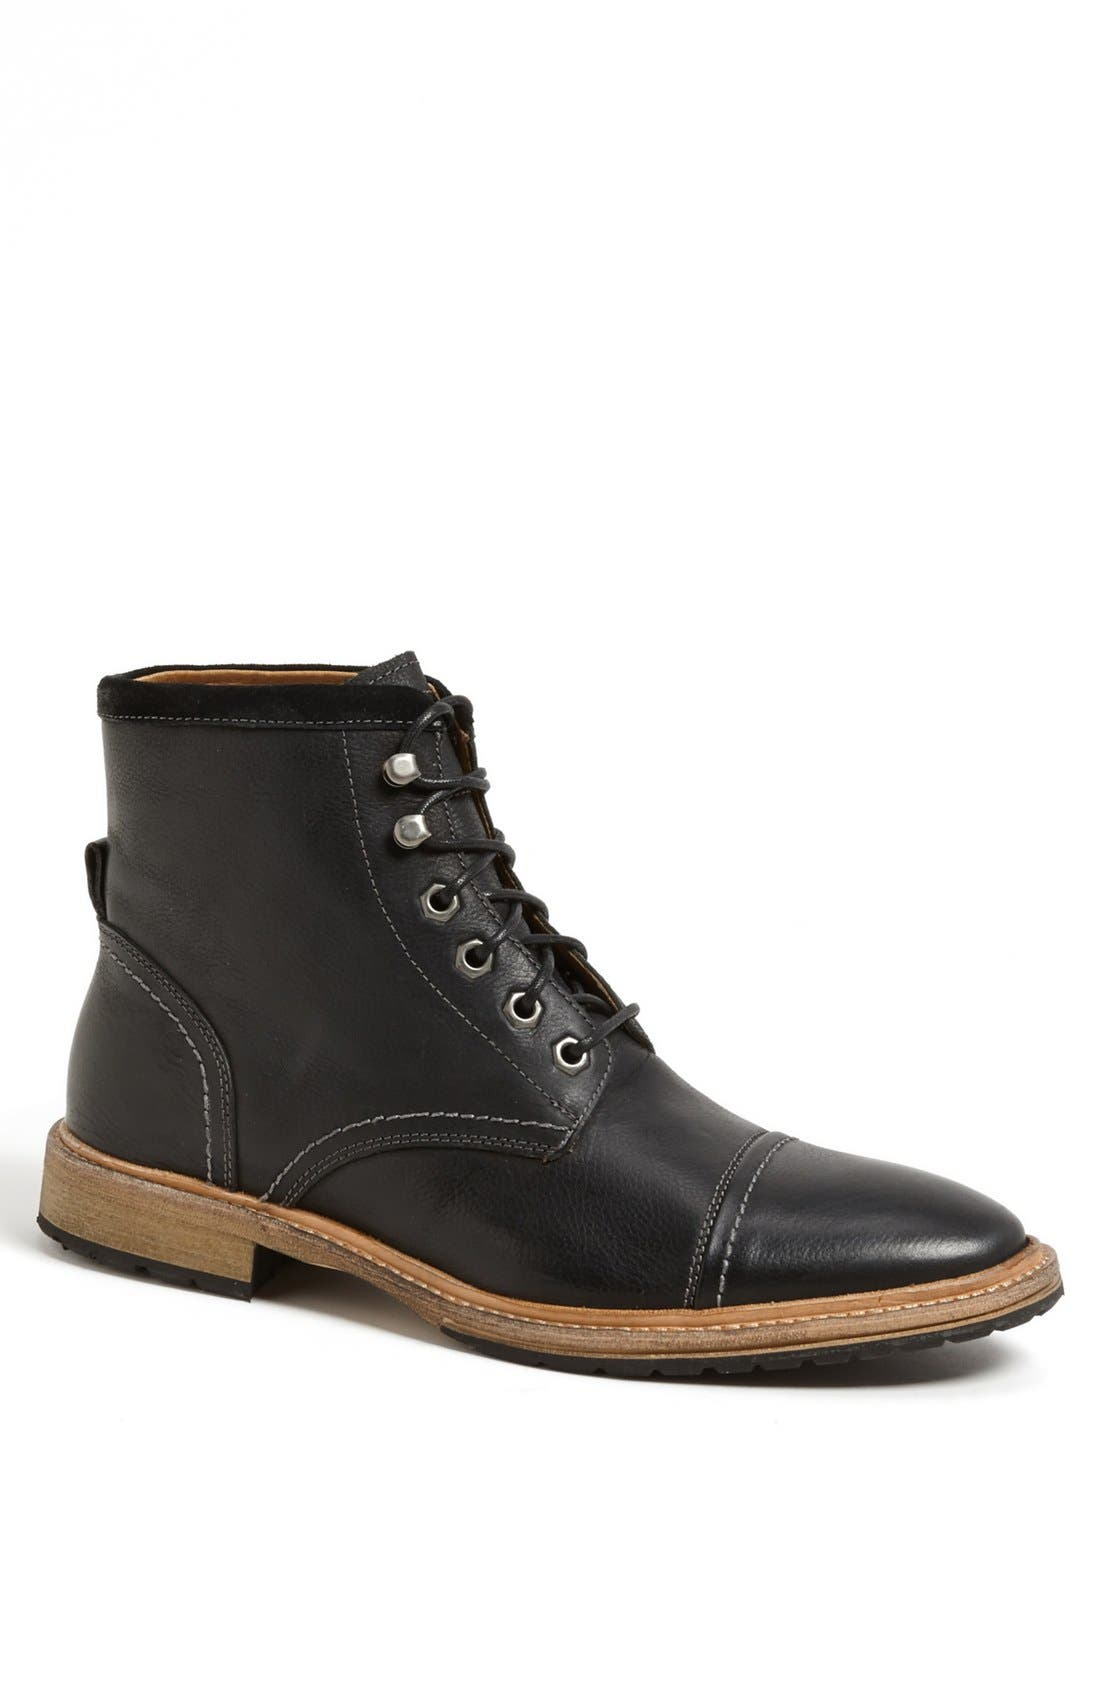 Alternate Image 1 Selected - Florsheim 'Indie' Cap Toe Boot